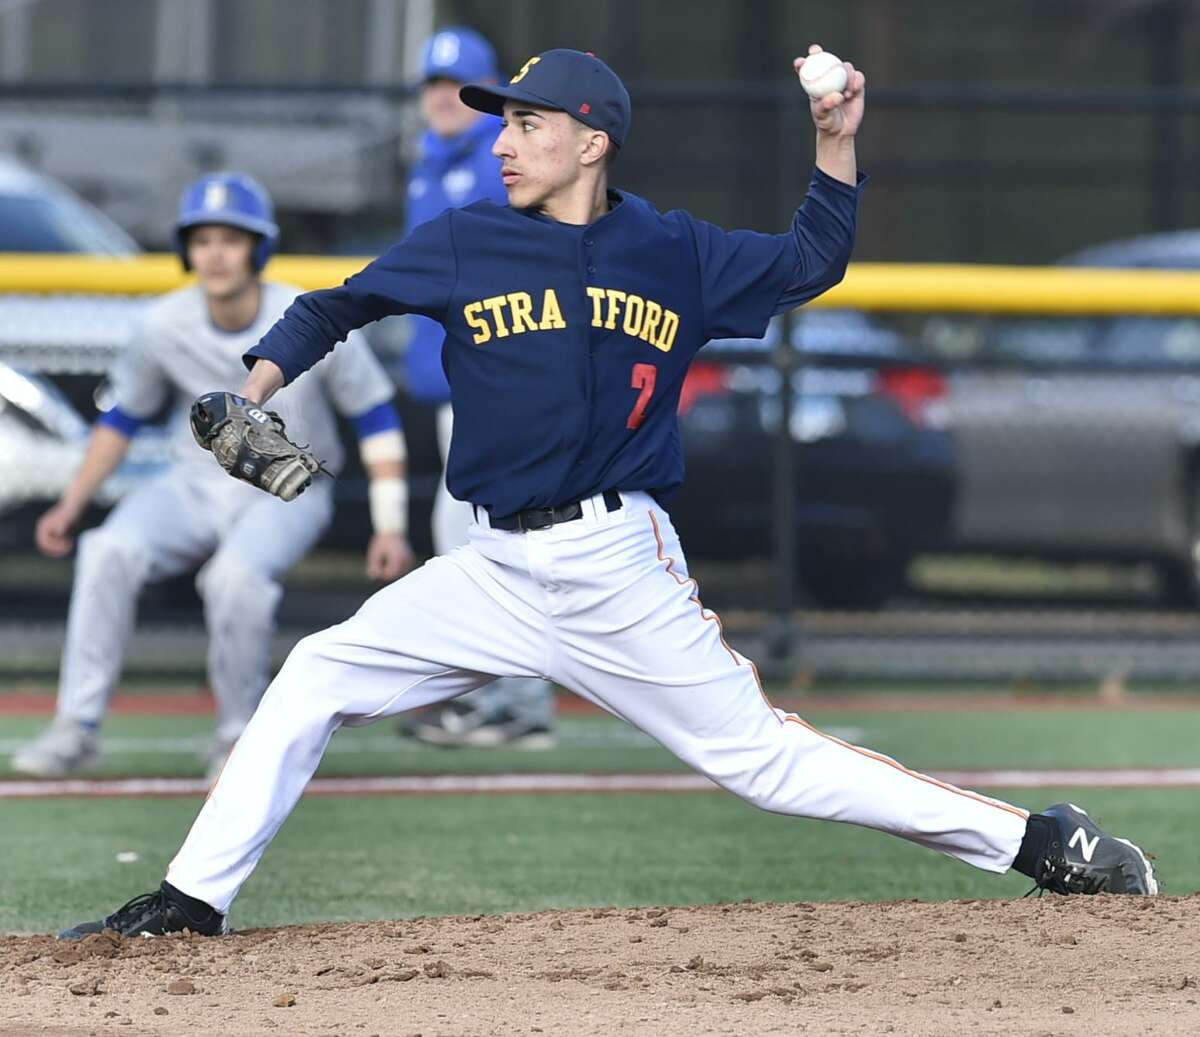 Stratford, Connecticut - Monday, April 15, 2019: Stratford H.S. vs. Bunnell H.S. baseball Monday afternoon at Penders Field in Stratford.